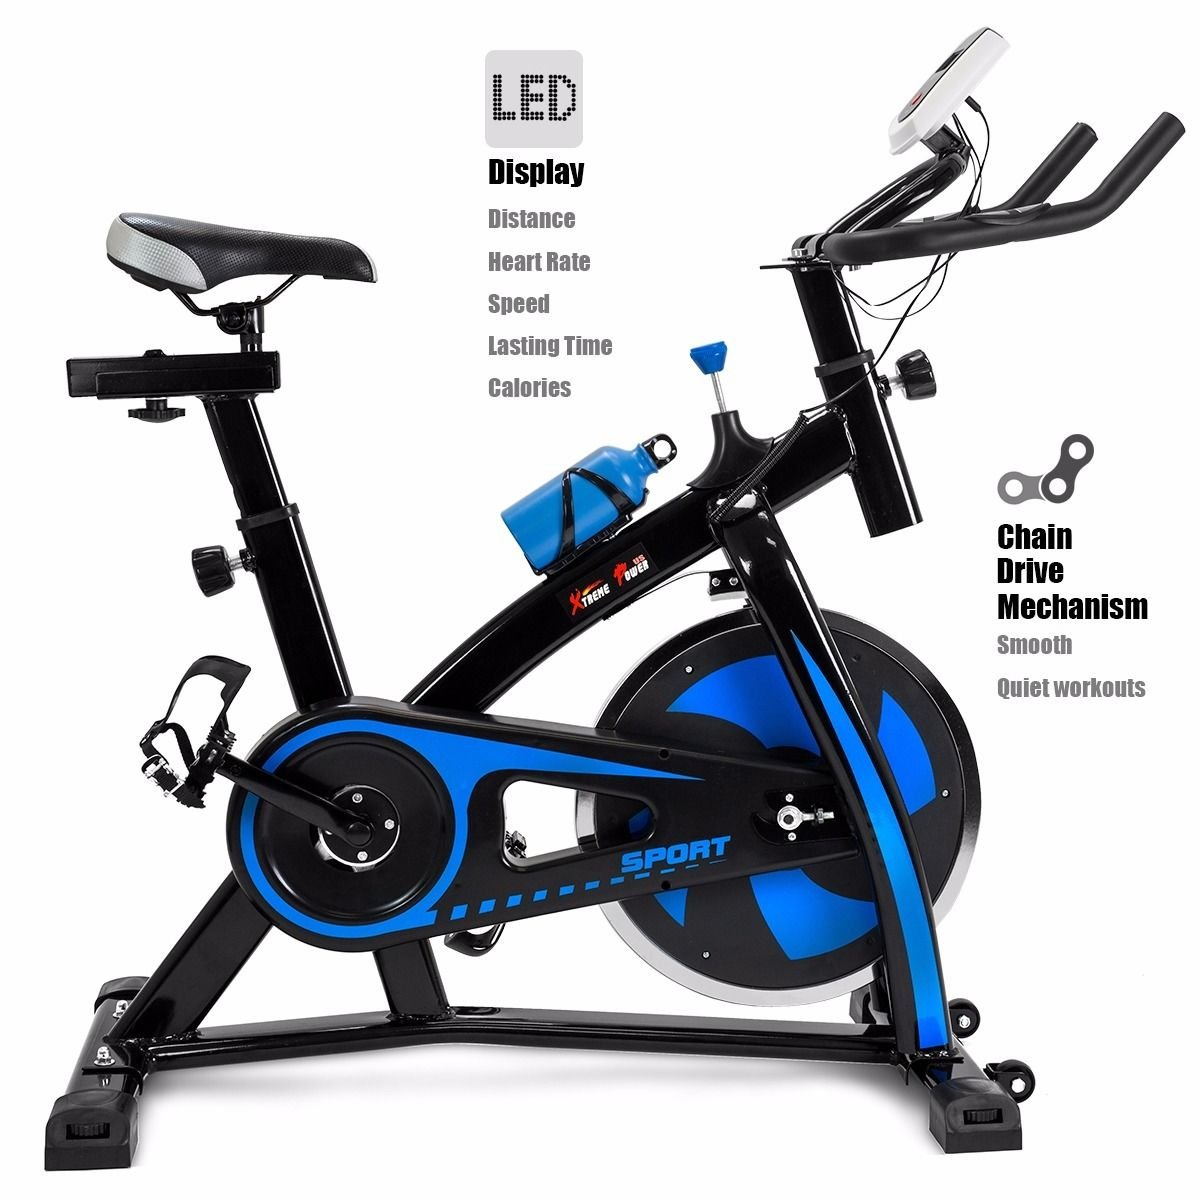 XtremepowerUS Stationary Exercise Bicycle Indoor Cycle Trainer Fitness Bikes Cycling Bottle Holder Heart Pulse (Blue and Black) by XtremepowerUS (Image #1)